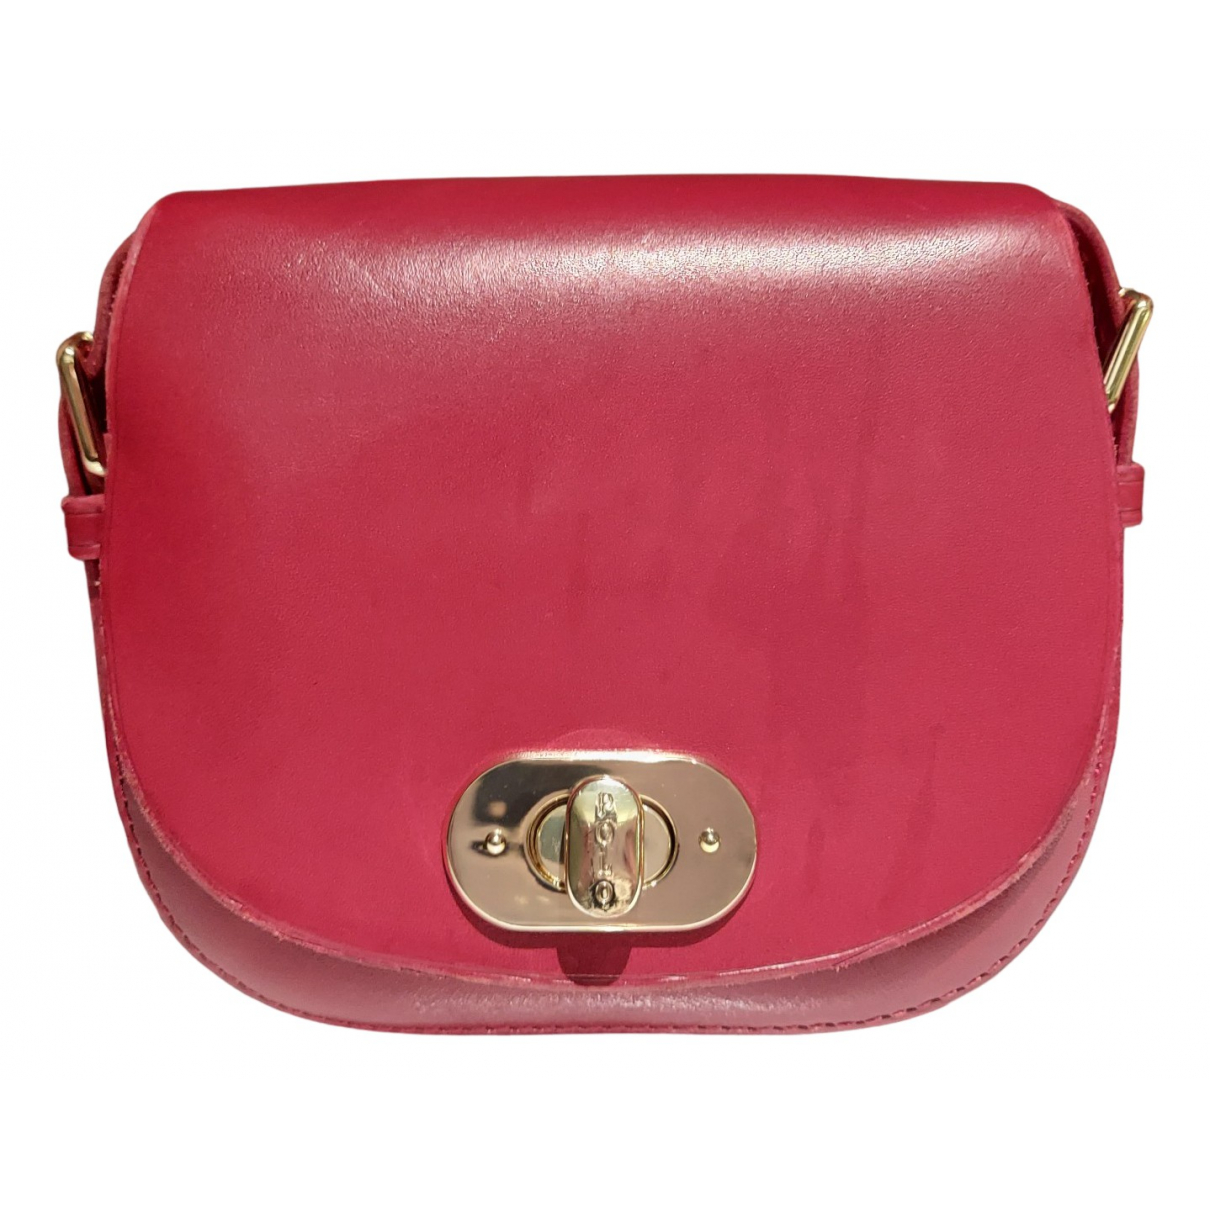 Polo Ralph Lauren N Red Leather Clutch bag for Women N